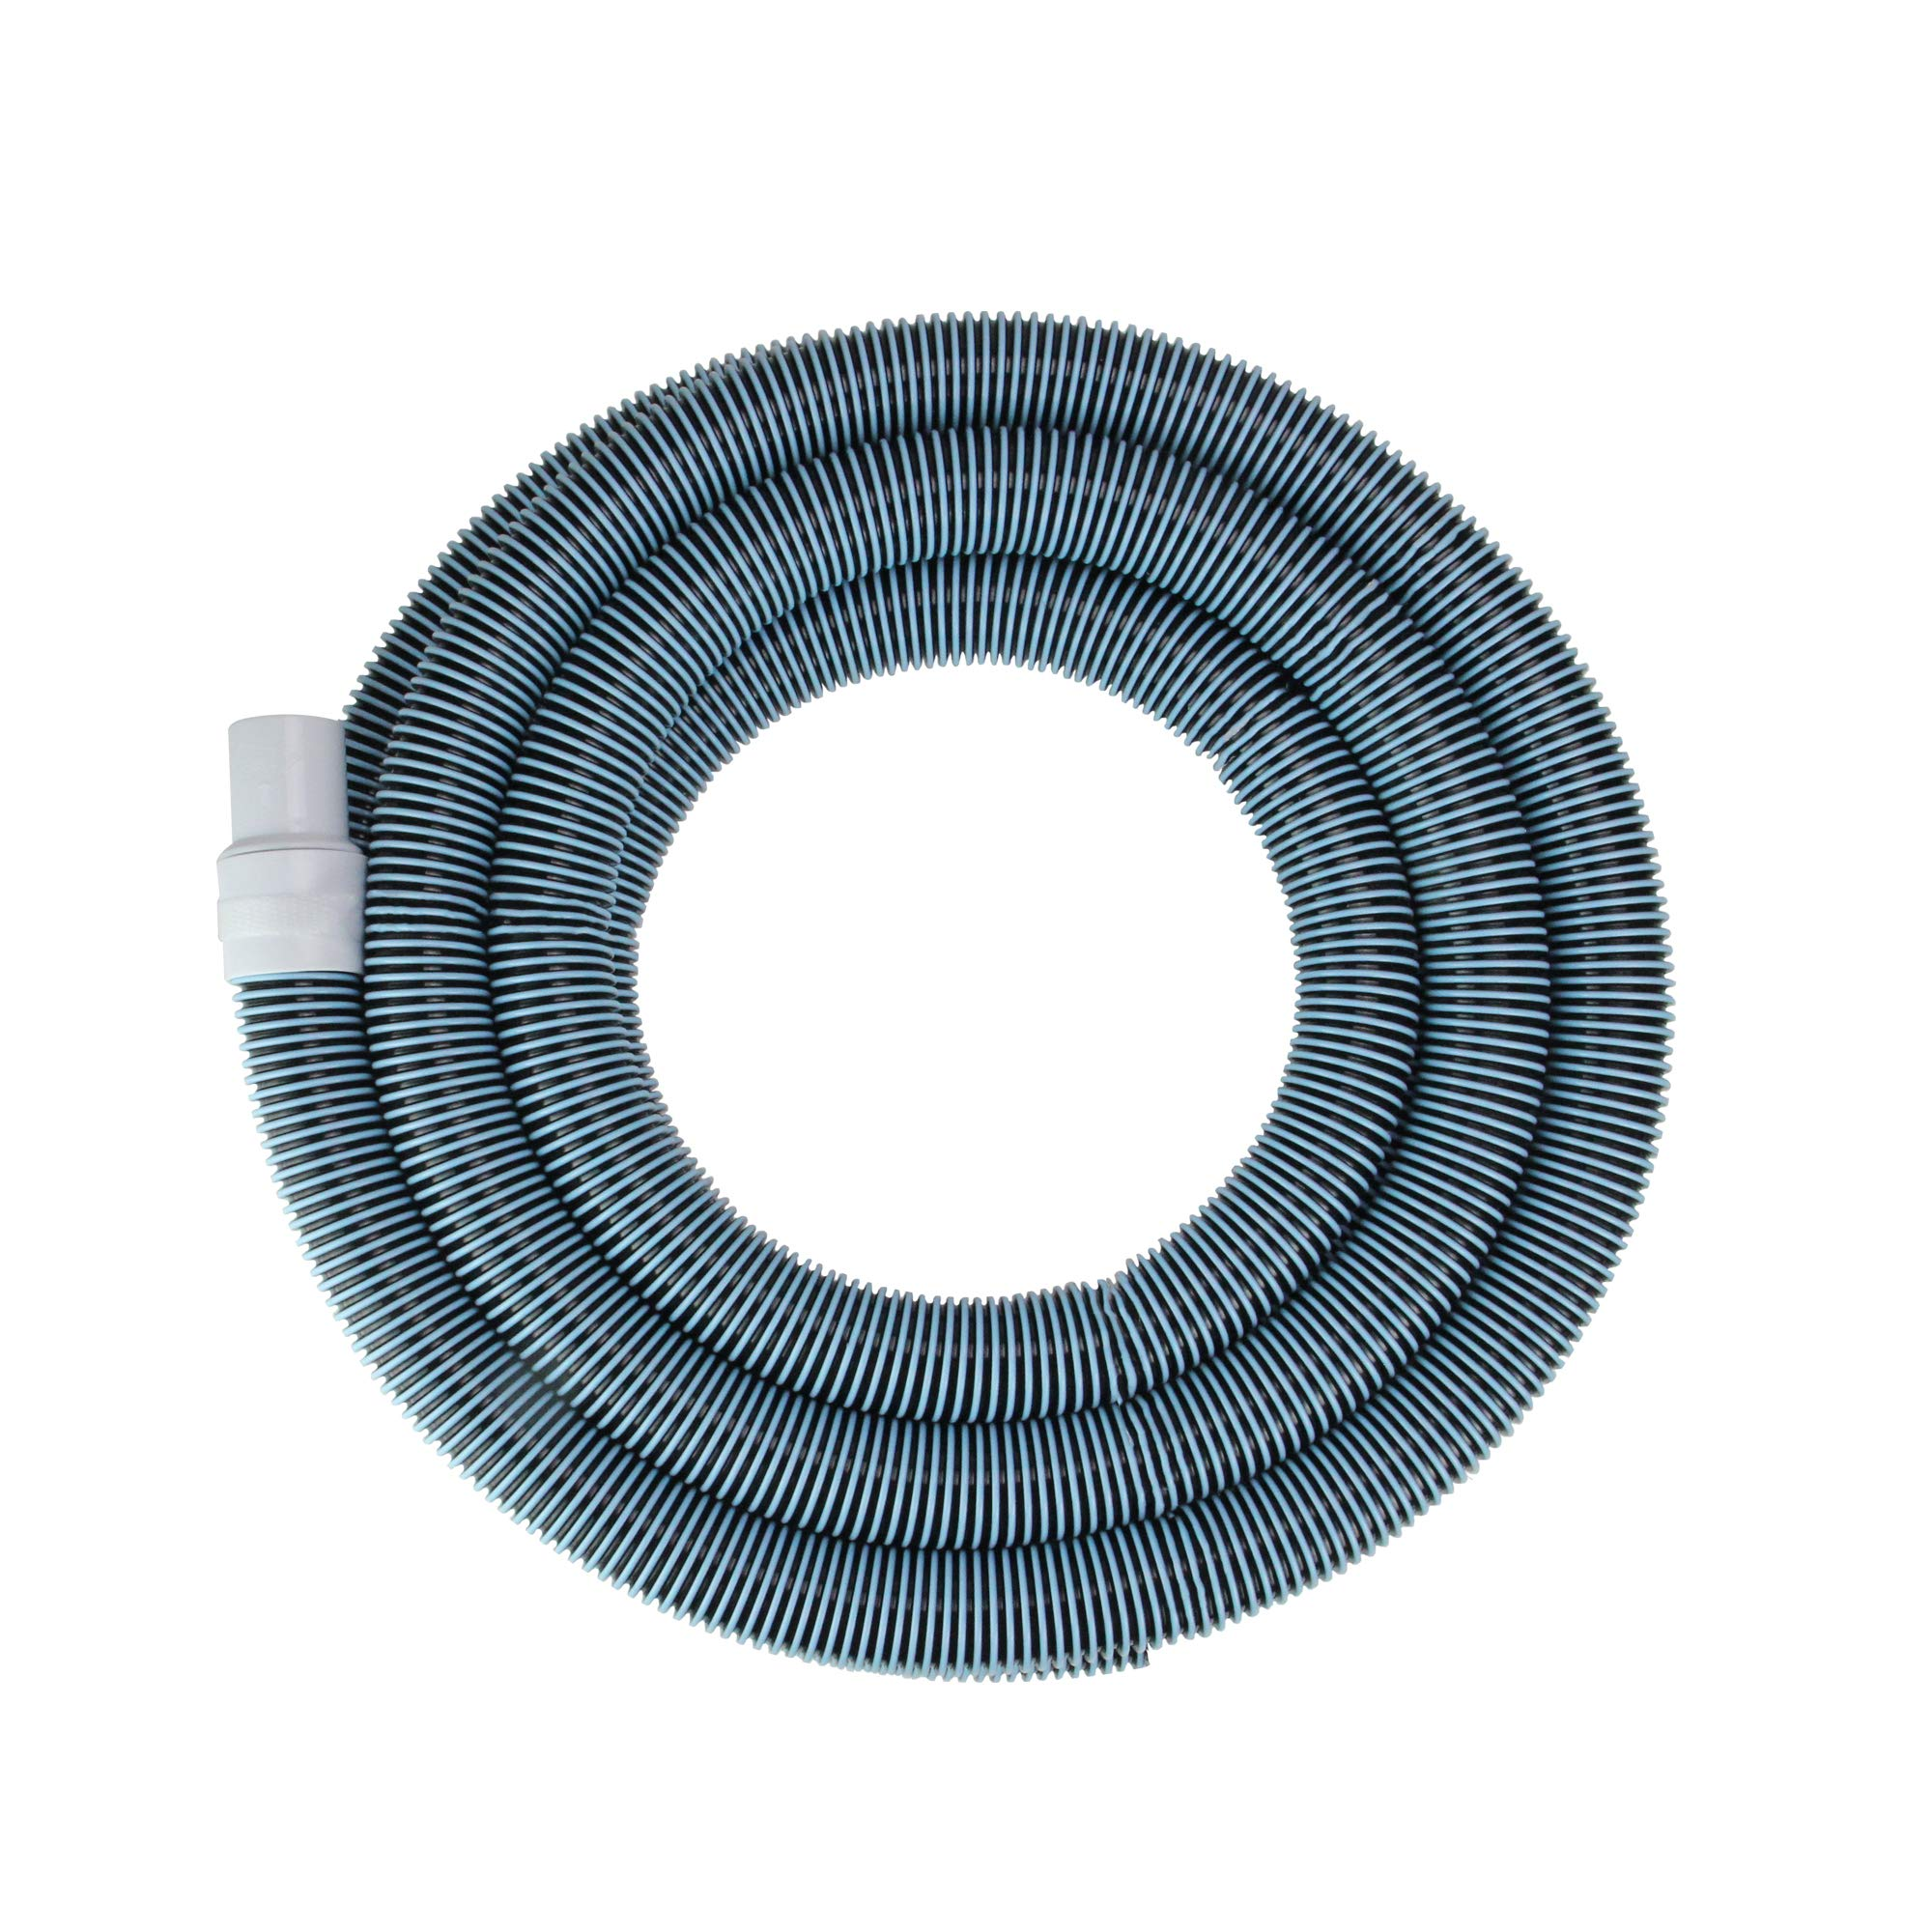 Spiral Wound Vacuum Swimming Pool Hose with Swivel Cuff - 18' x 1.25''